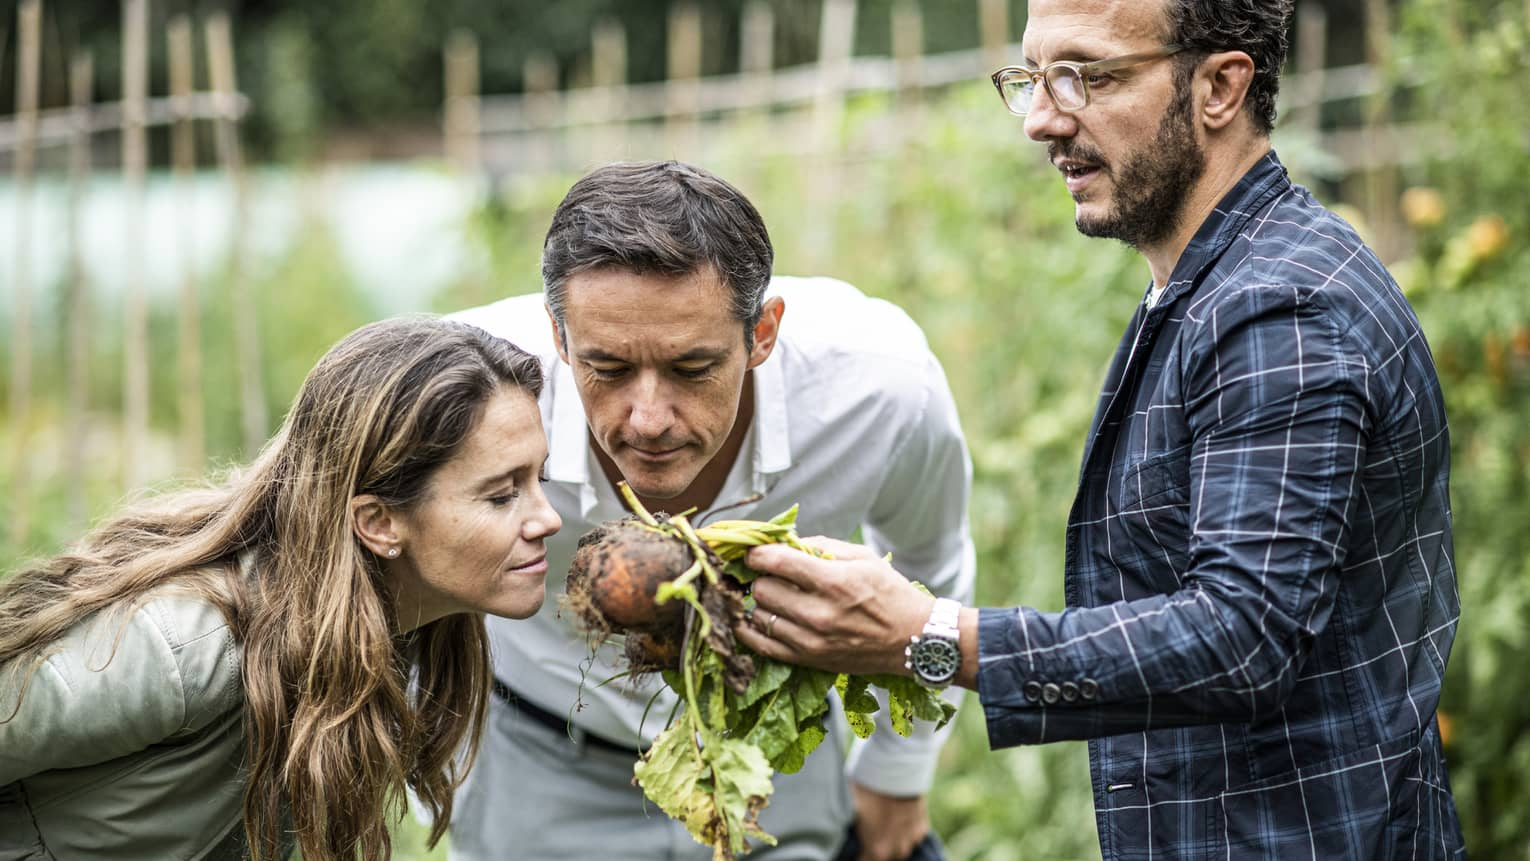 A man and woman lean in to smell a root vegetable in the garden